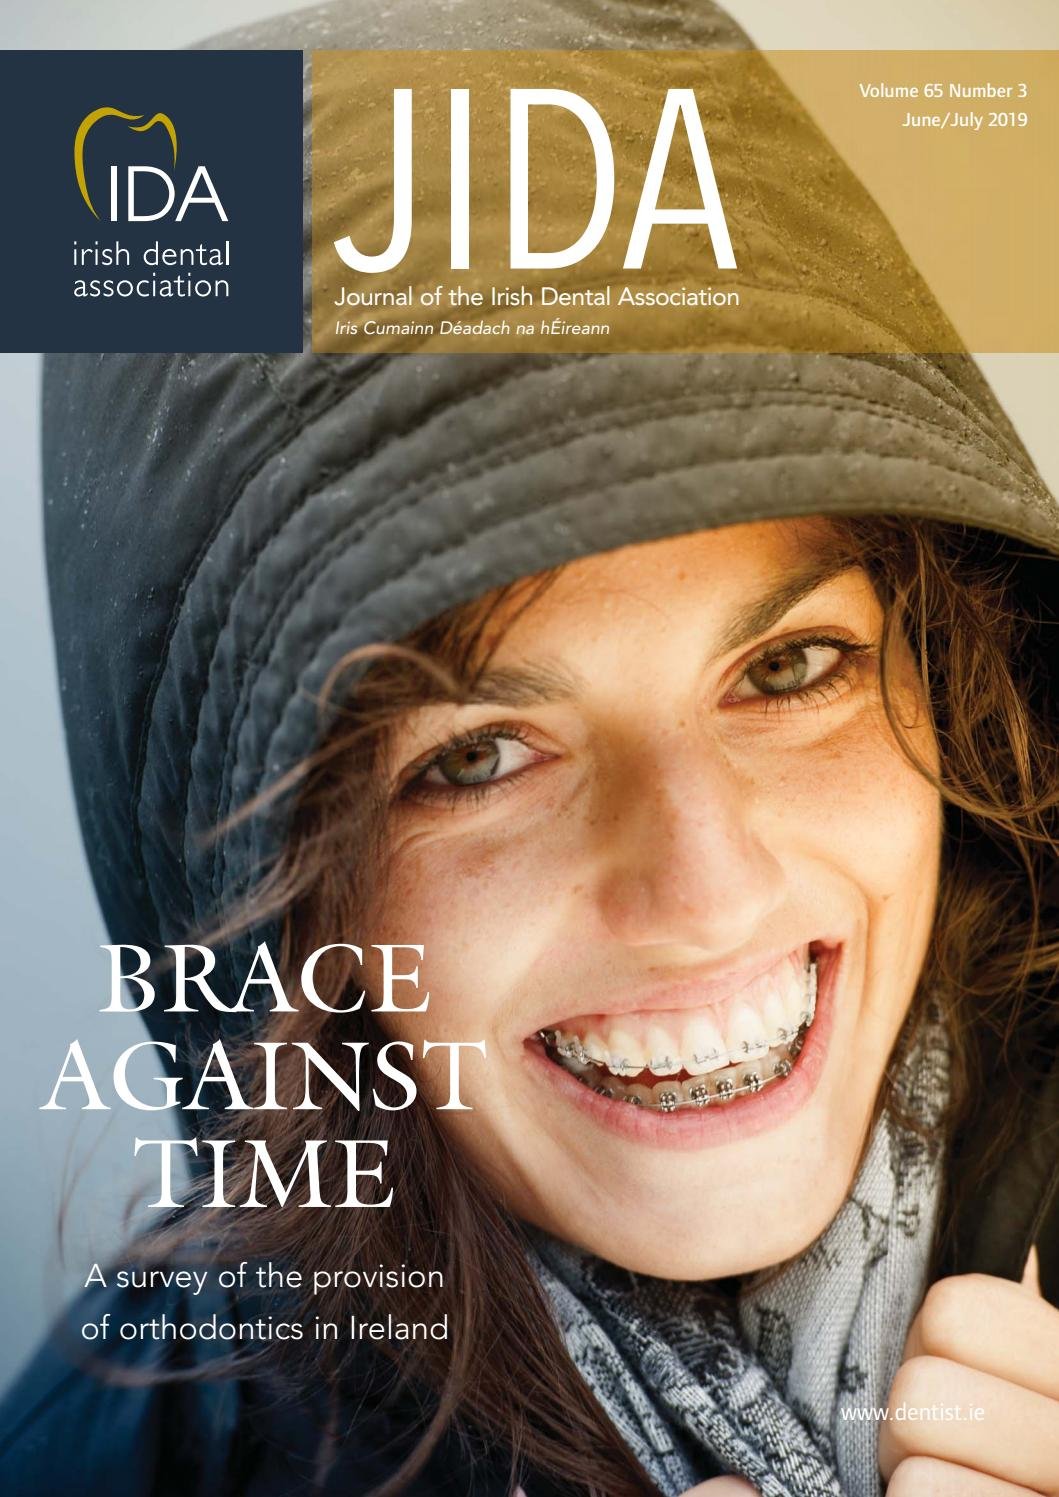 Journal of Irish Dental Association by Th!nk Media - issuu